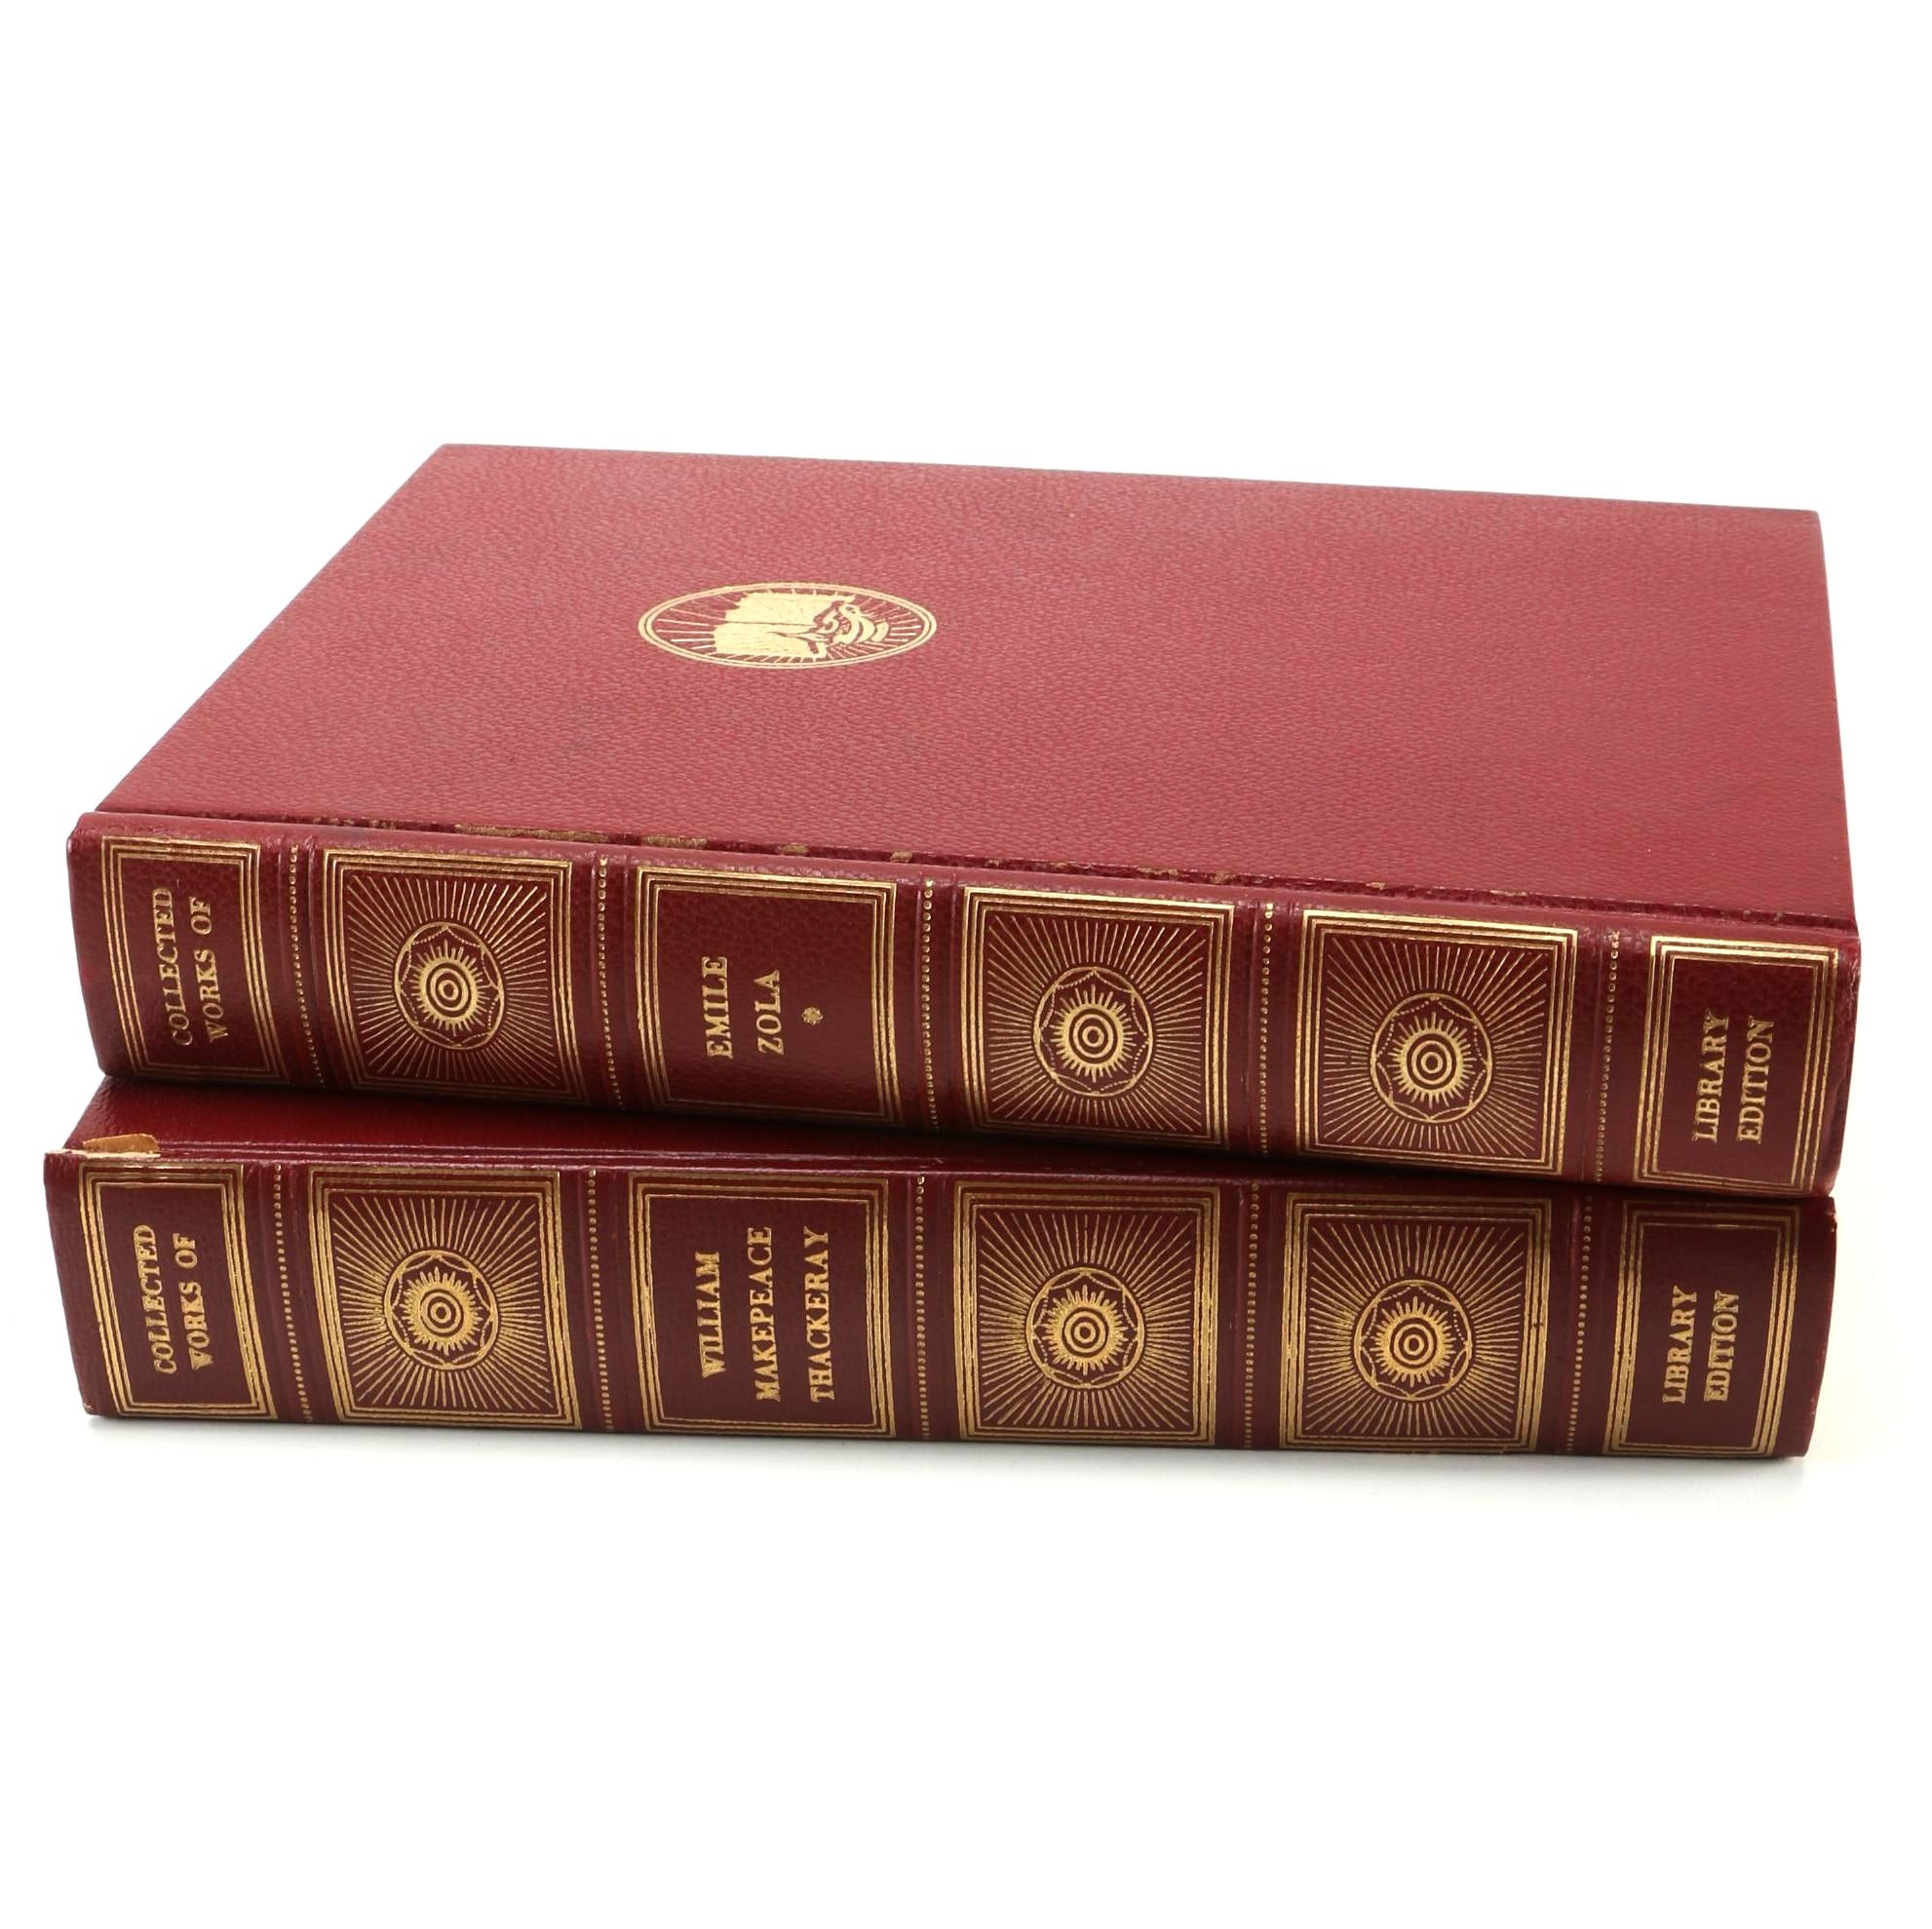 """Hardcover Library Editions of """"Collected Works Of"""" Emile Zola and William Thackeray"""